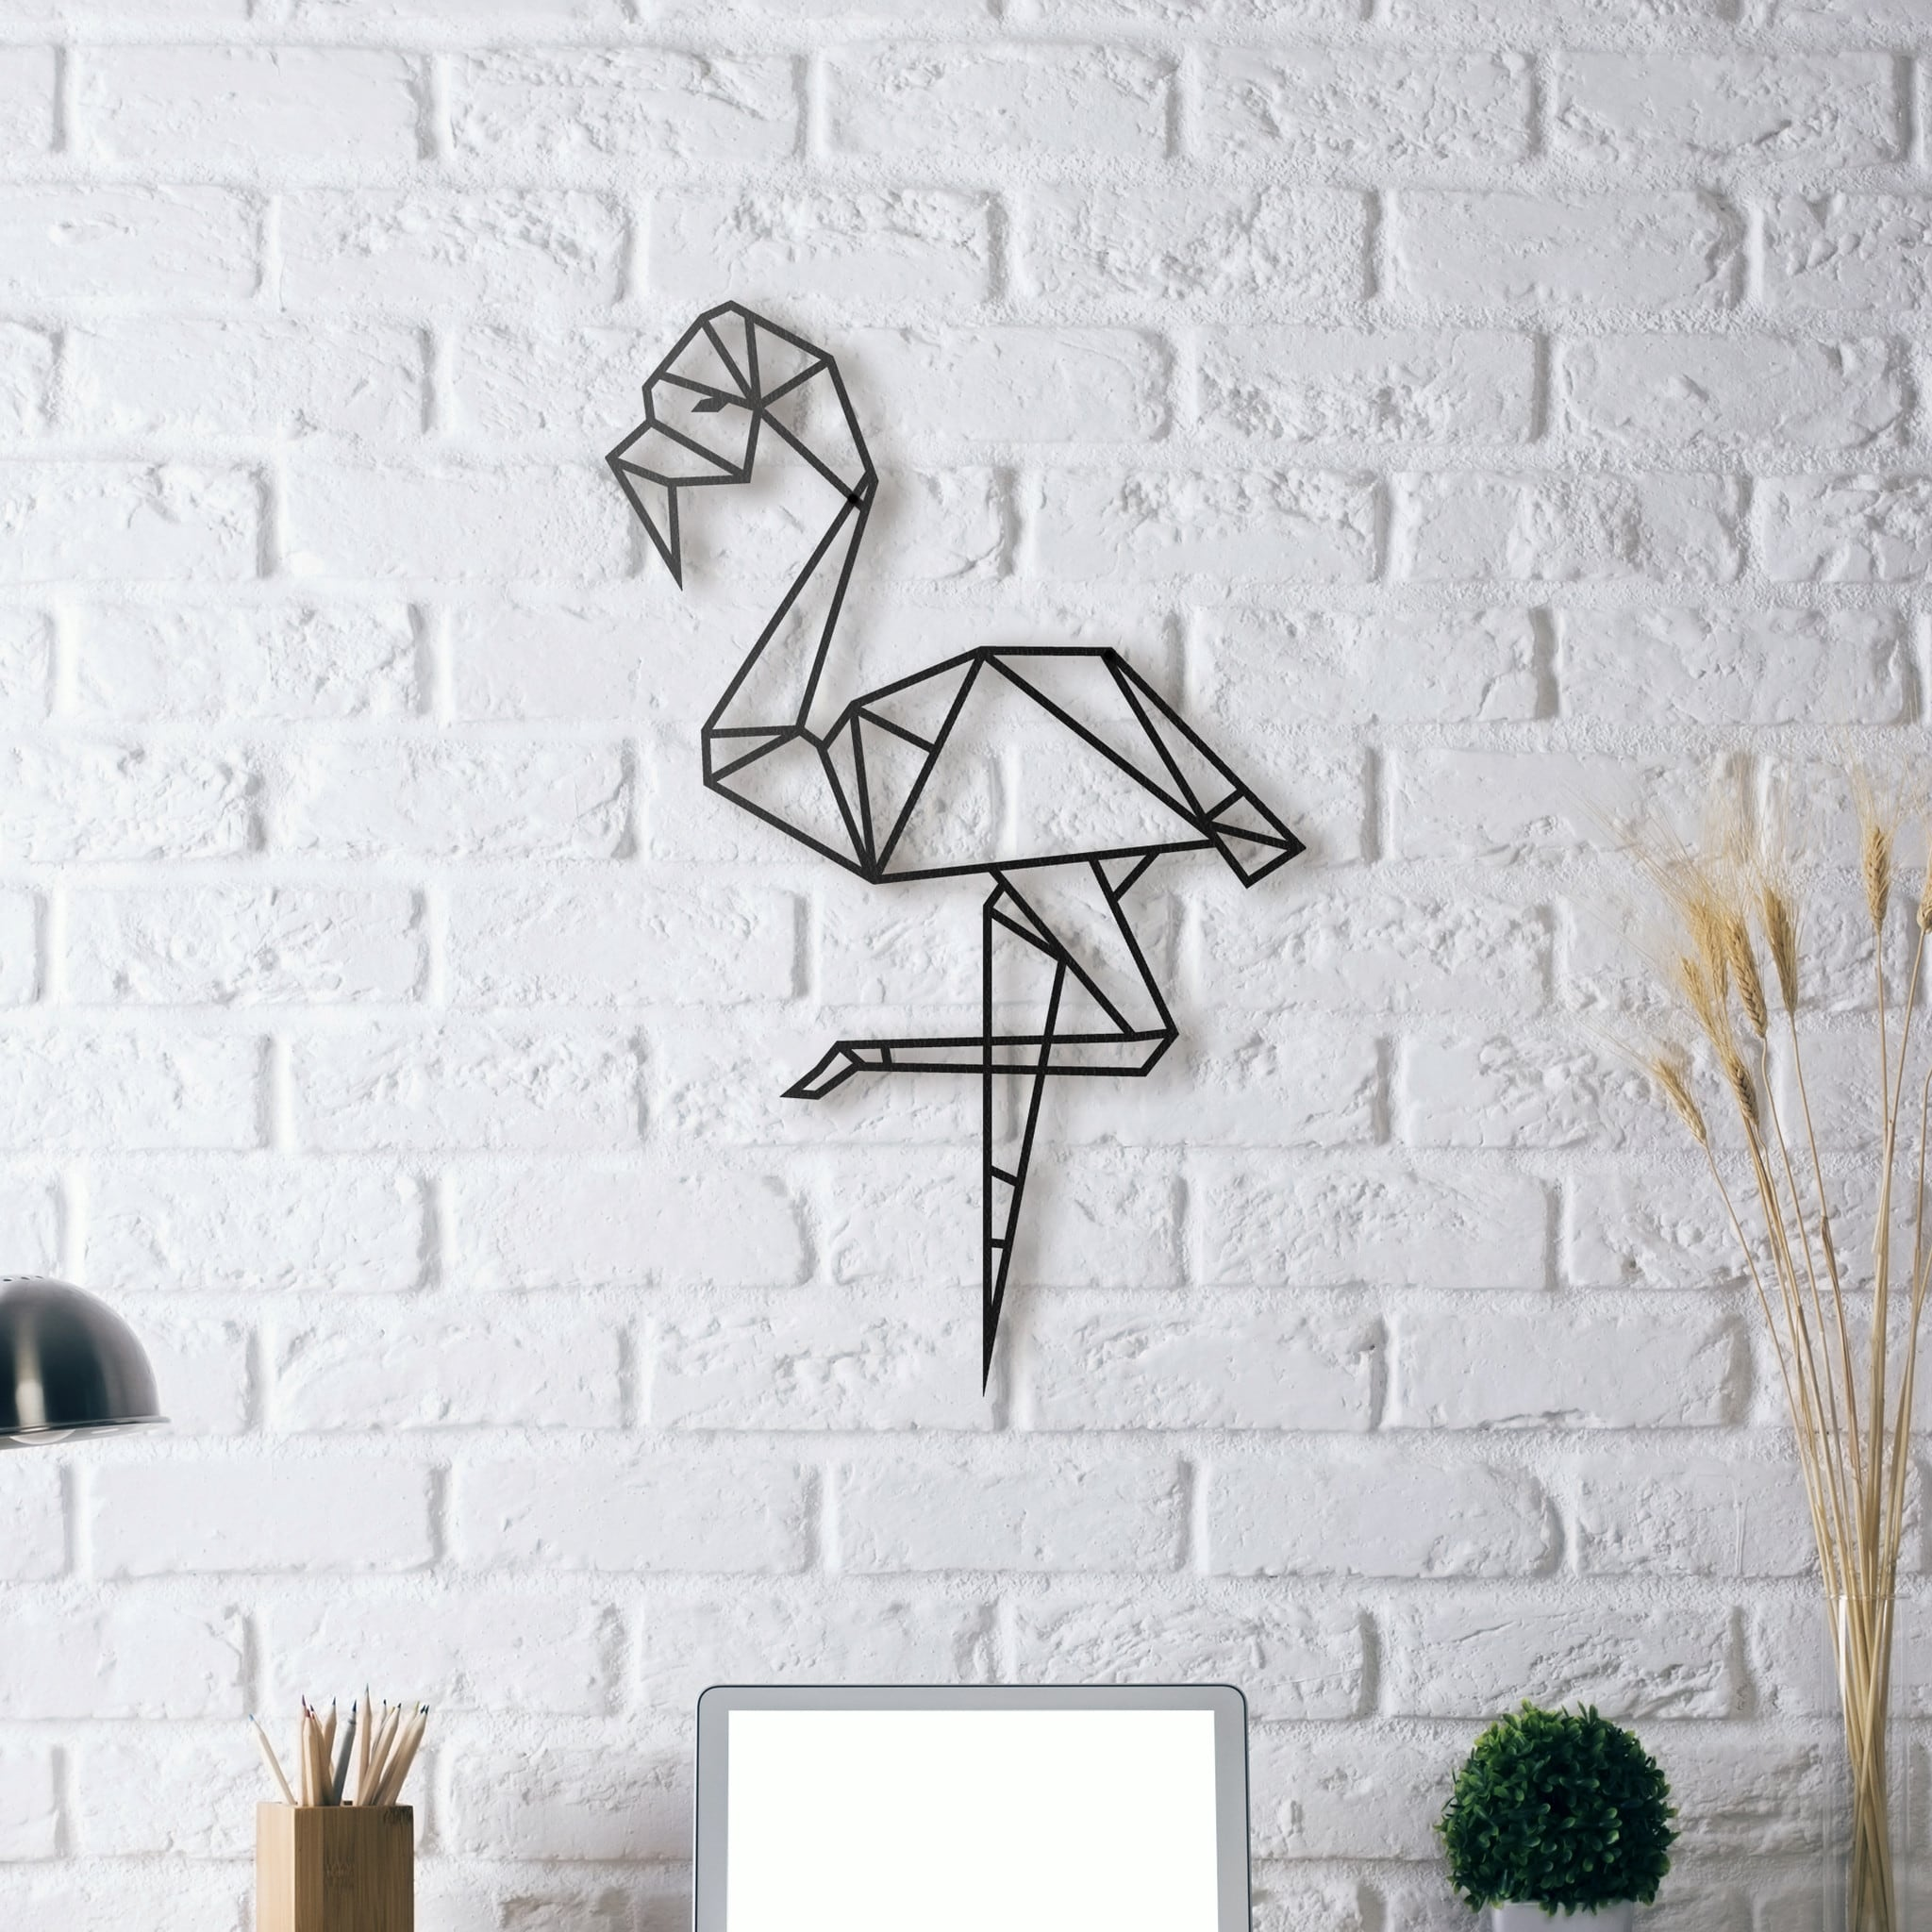 Wall metal decoration of a pink flamingo for a design interior